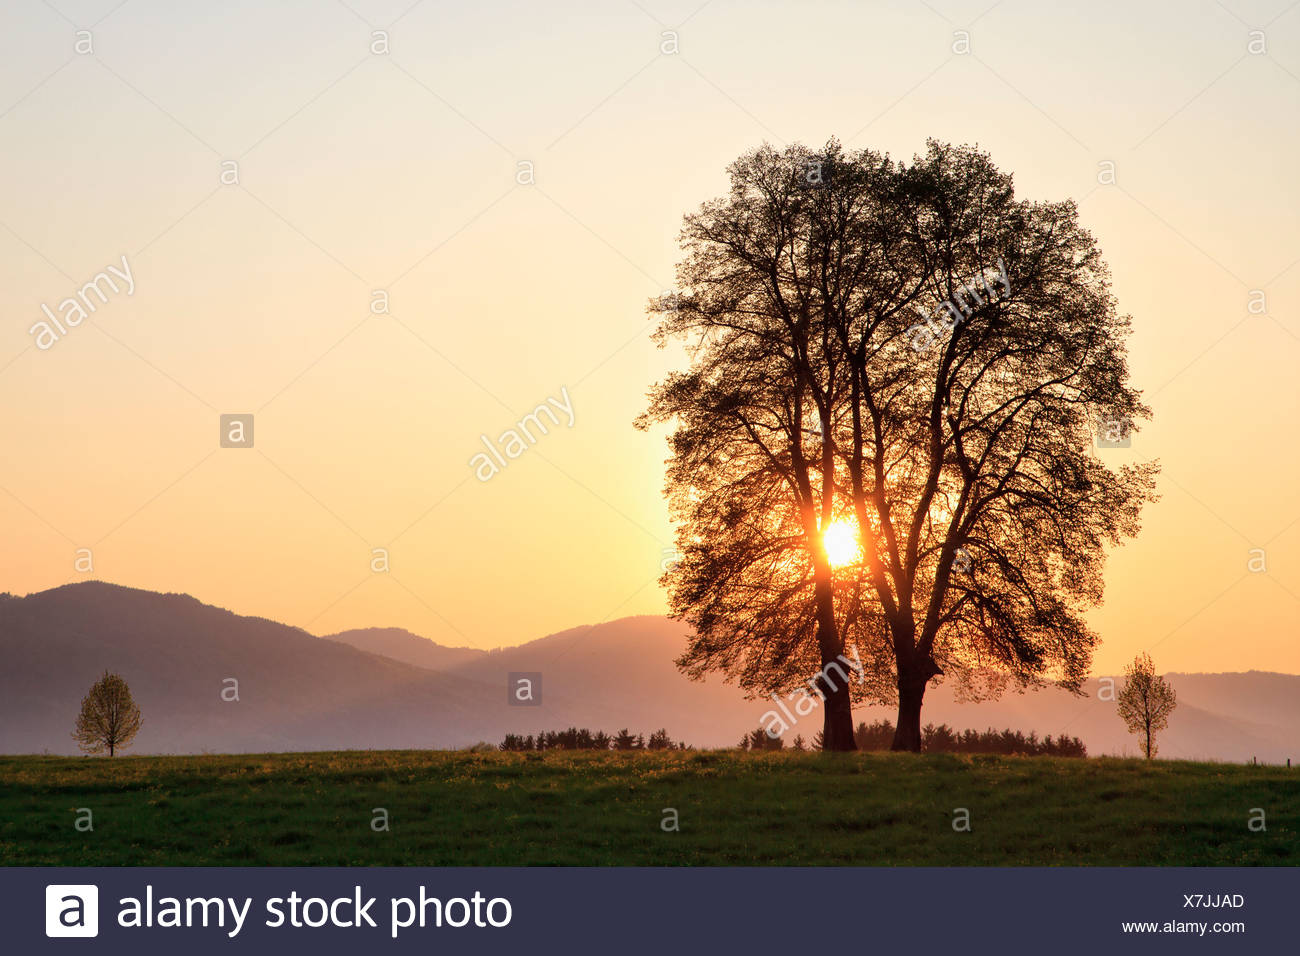 Germany, Bavaria, View of broad leaved tree at sunrise - Stock Image